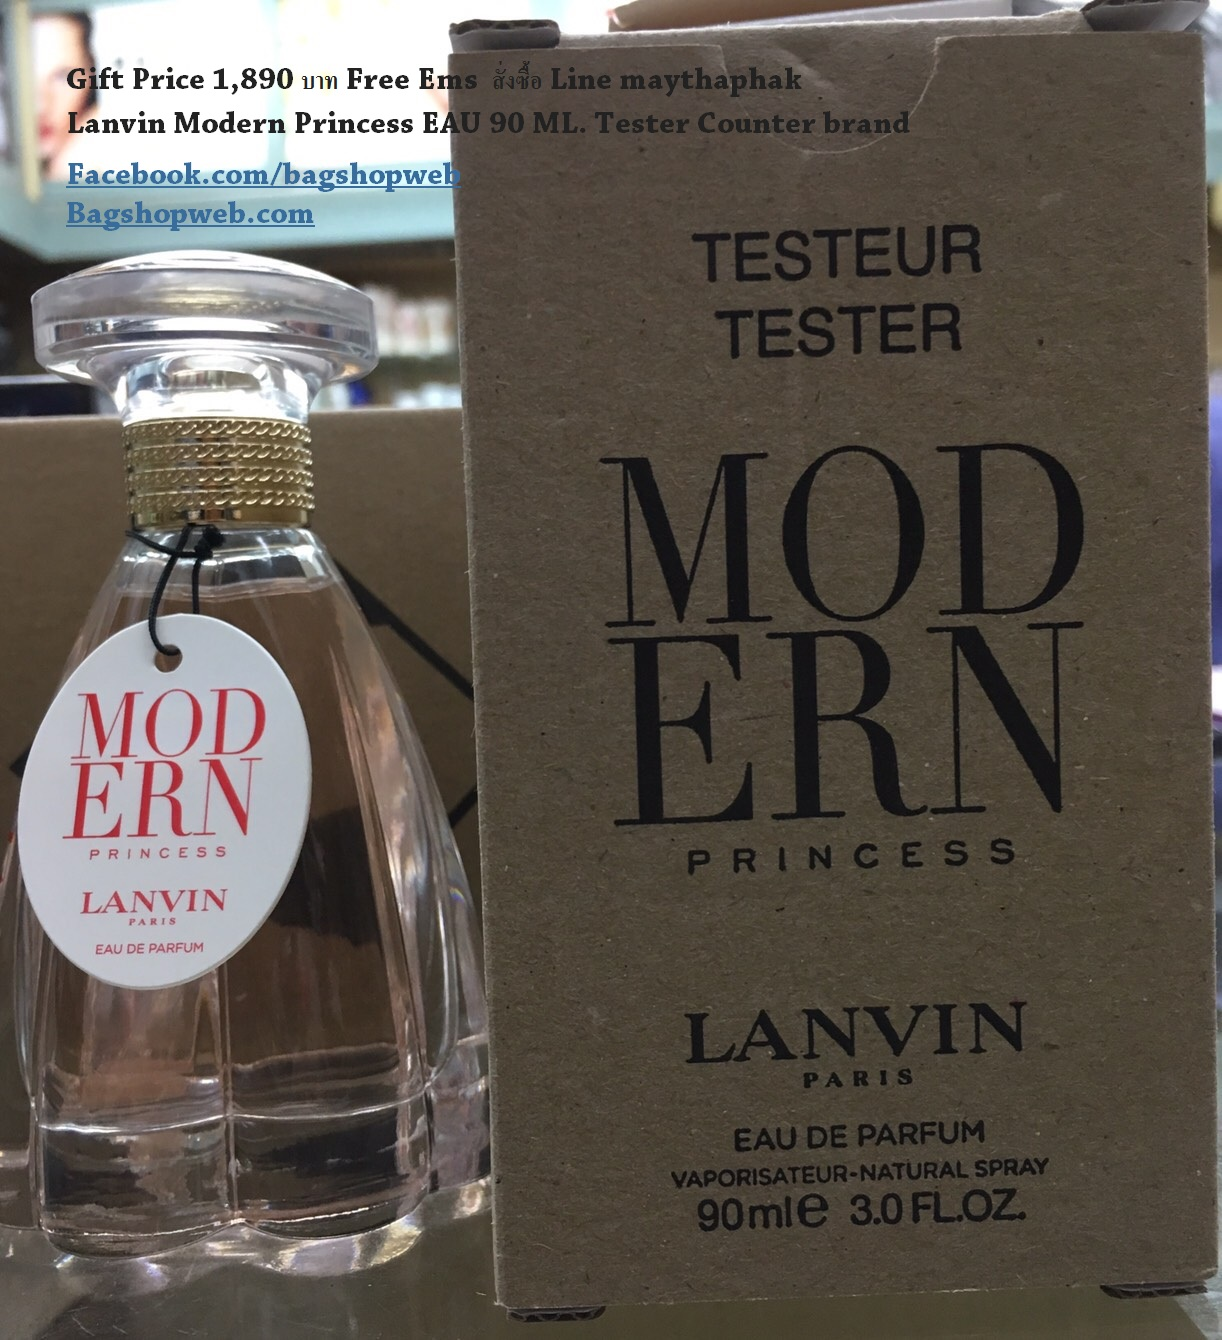 น้ำหอม Lanvin Modern Princess EAU 90 ML. Tester Counter brand แท้ น้ำหอม Tester